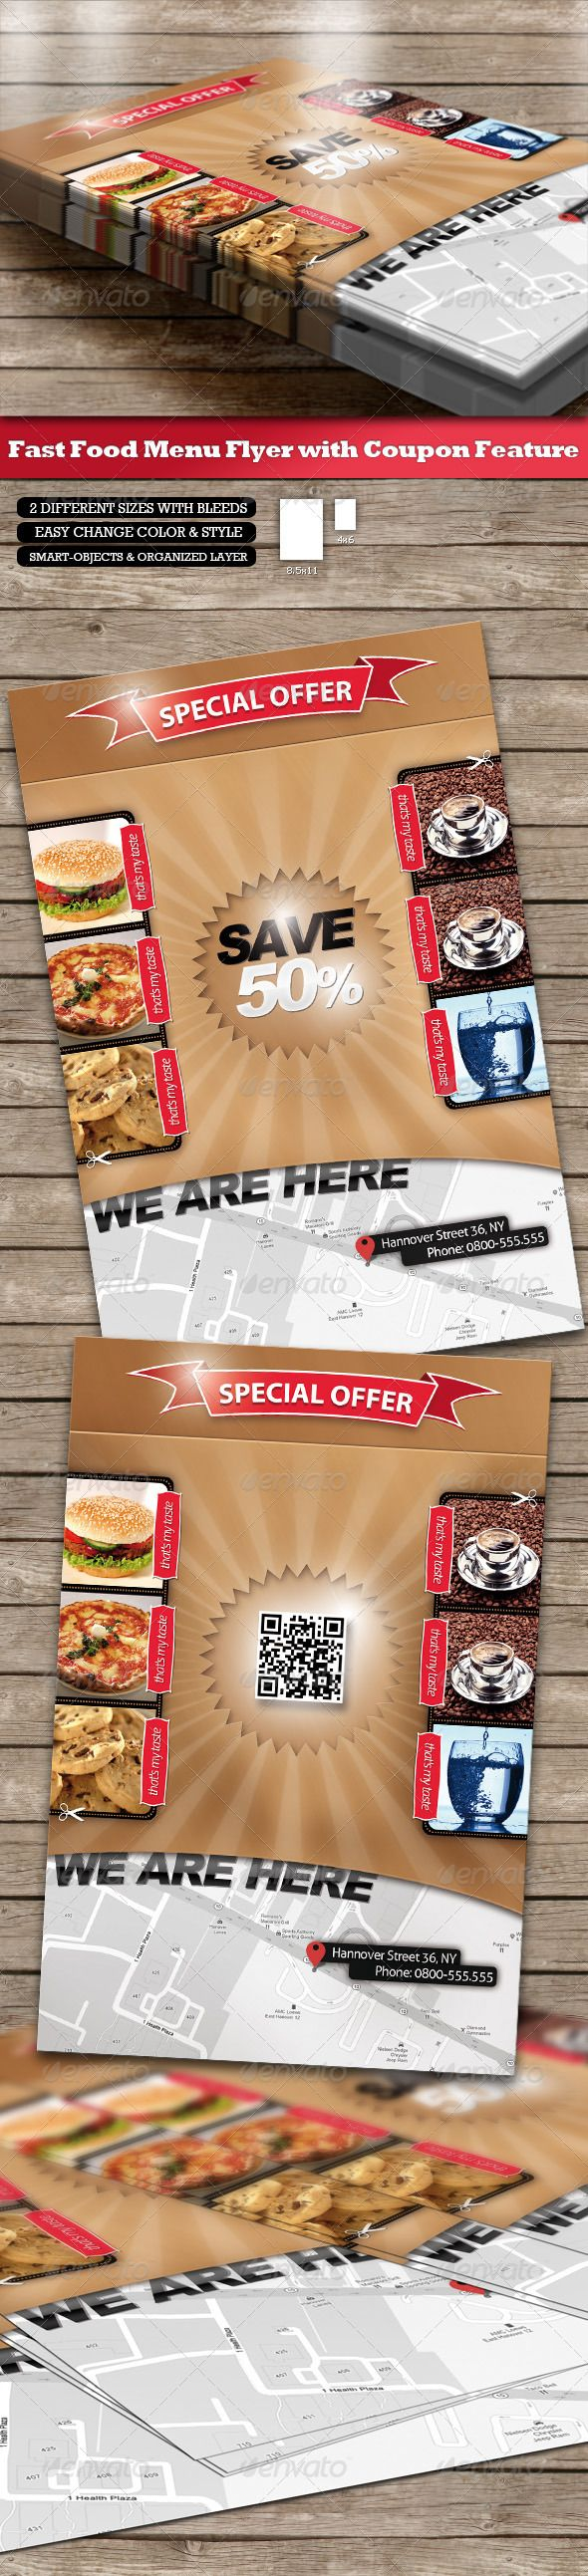 Fast Food Menu Flyer  Coupon Function And QrCode  Food Menu Qr